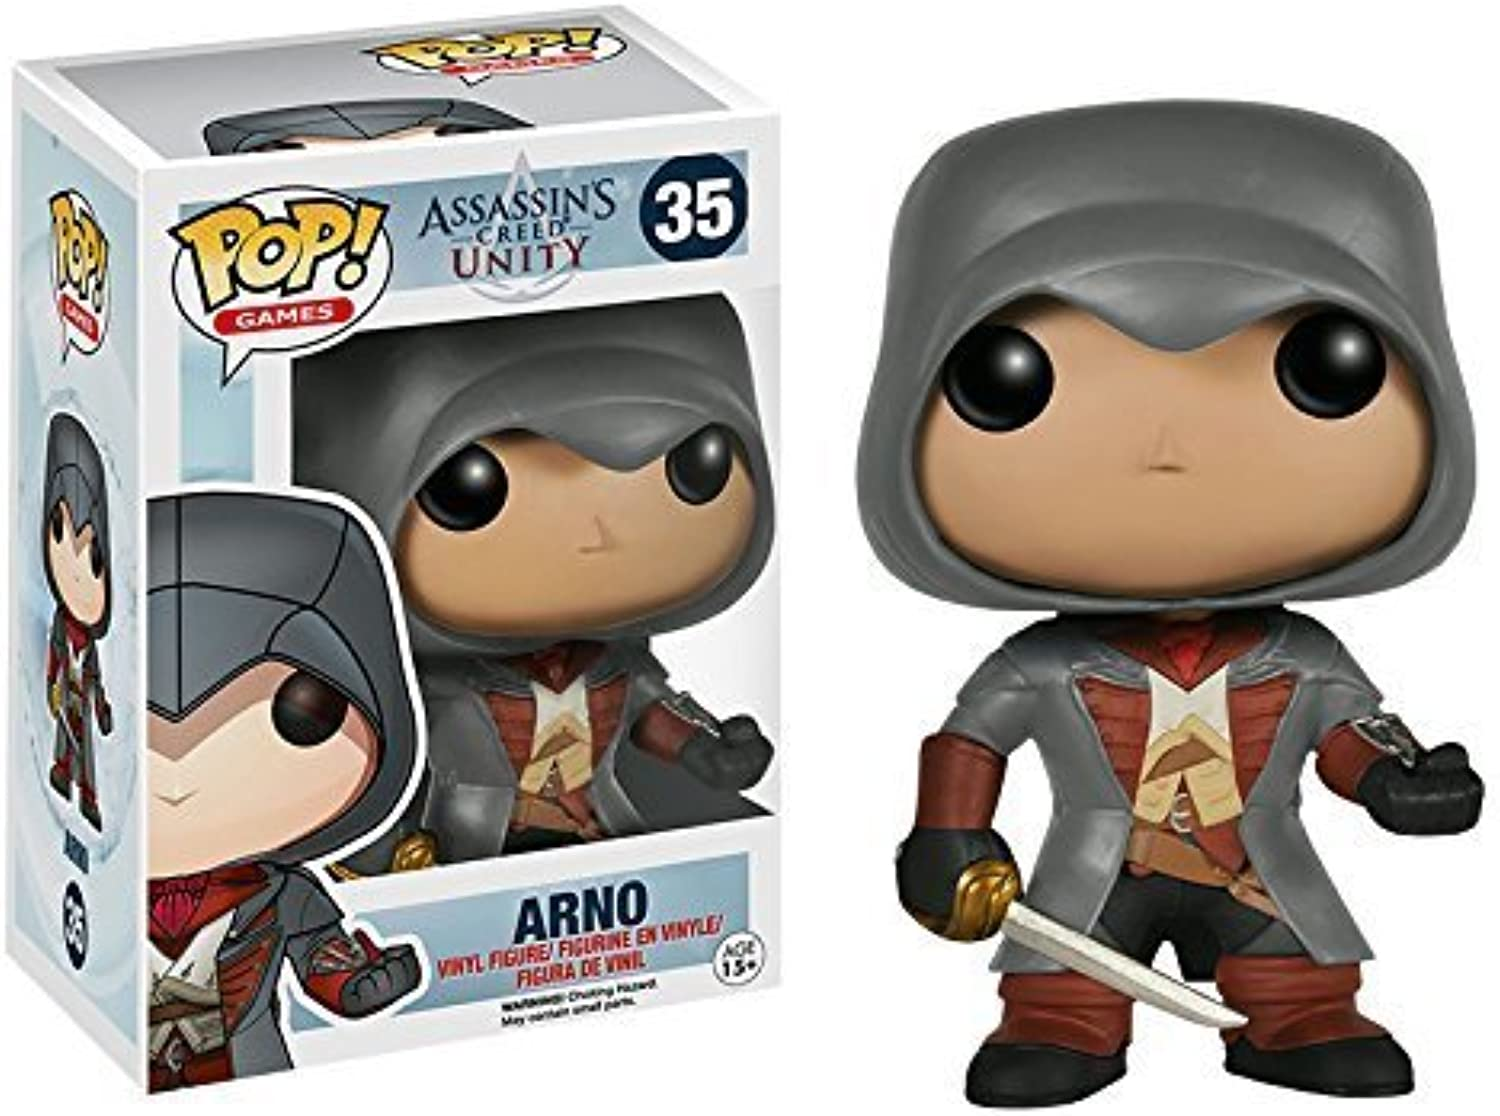 tiempo libre Assassin's Creed Unity Arno Pop  Vinyl Figura (35) (35) (35) by ABC  moda